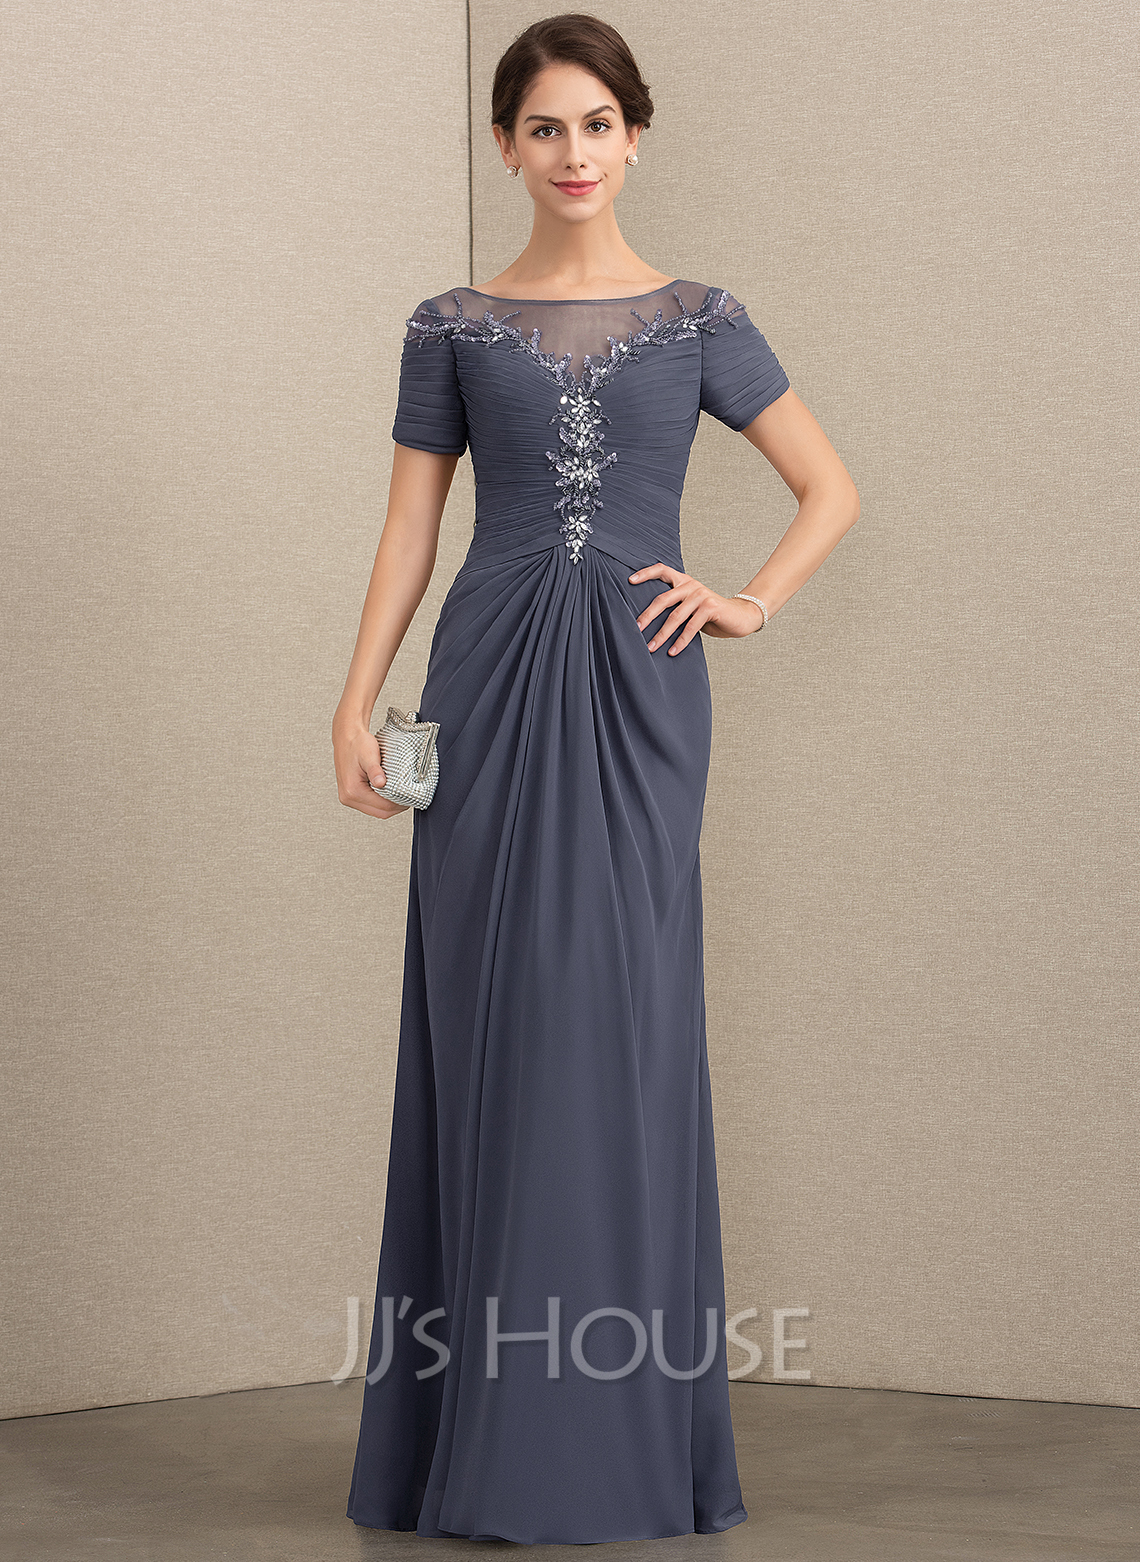 e22d83f42db8 A-Line/Princess Scoop Neck Floor-Length Chiffon Mother of the Bride Dress. Loading  zoom